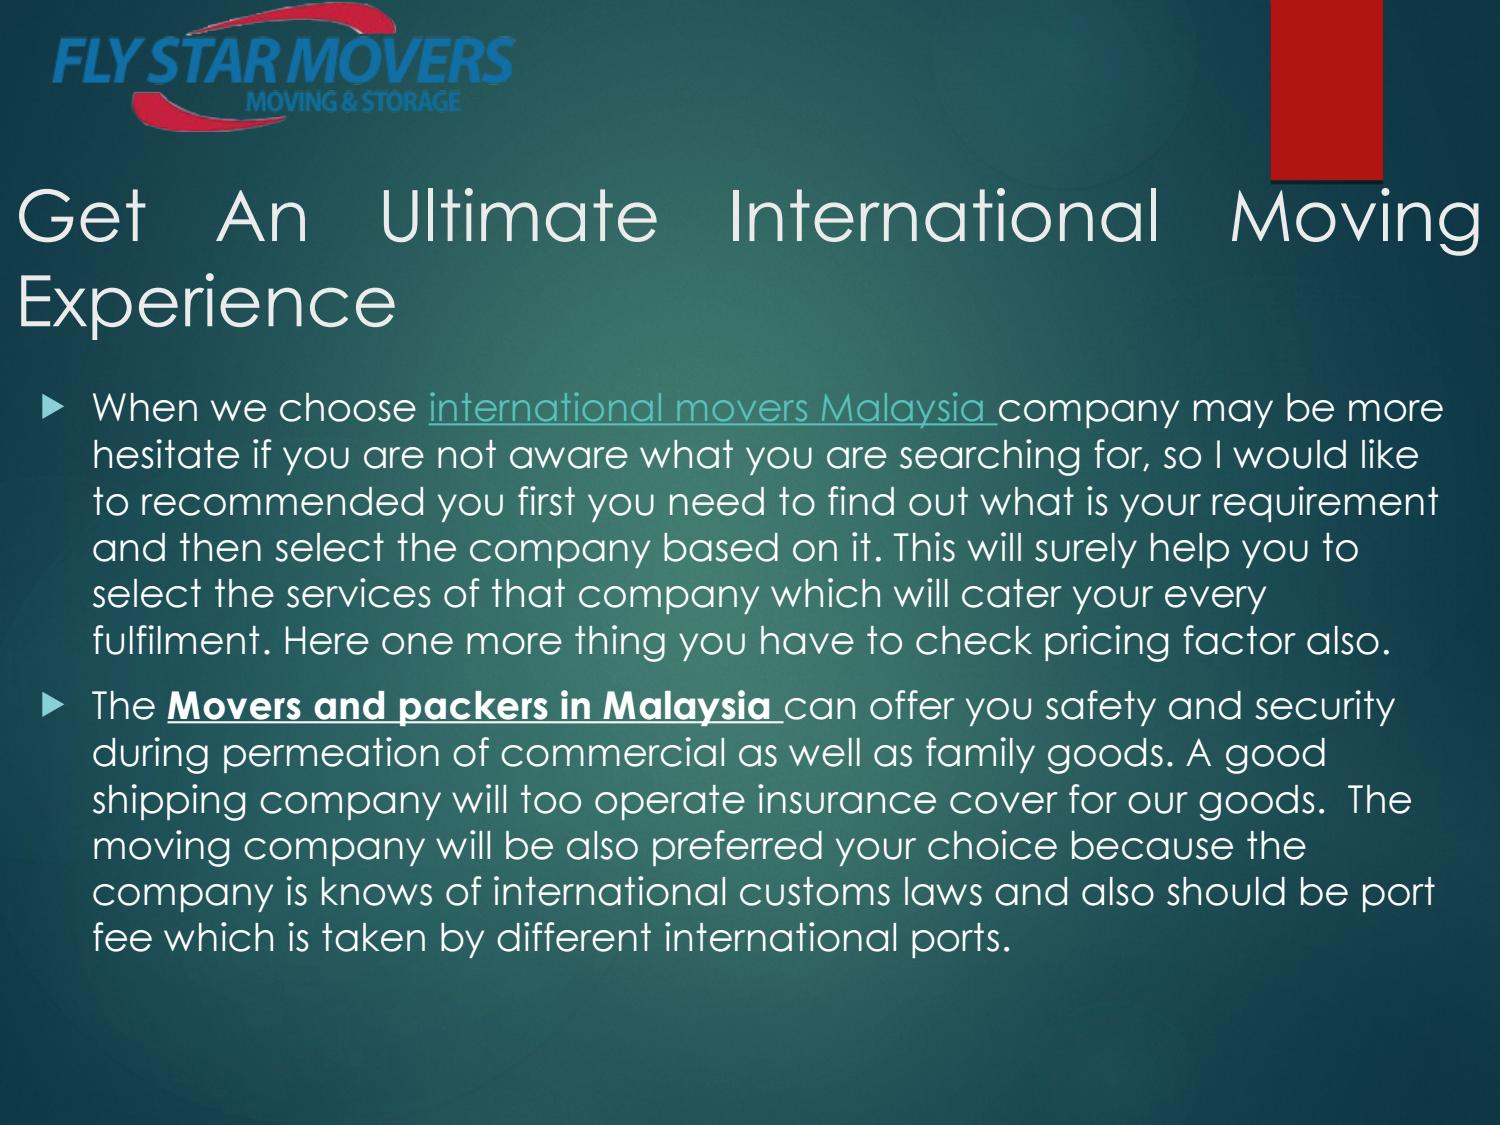 Get An Ultimate International Moving Experience